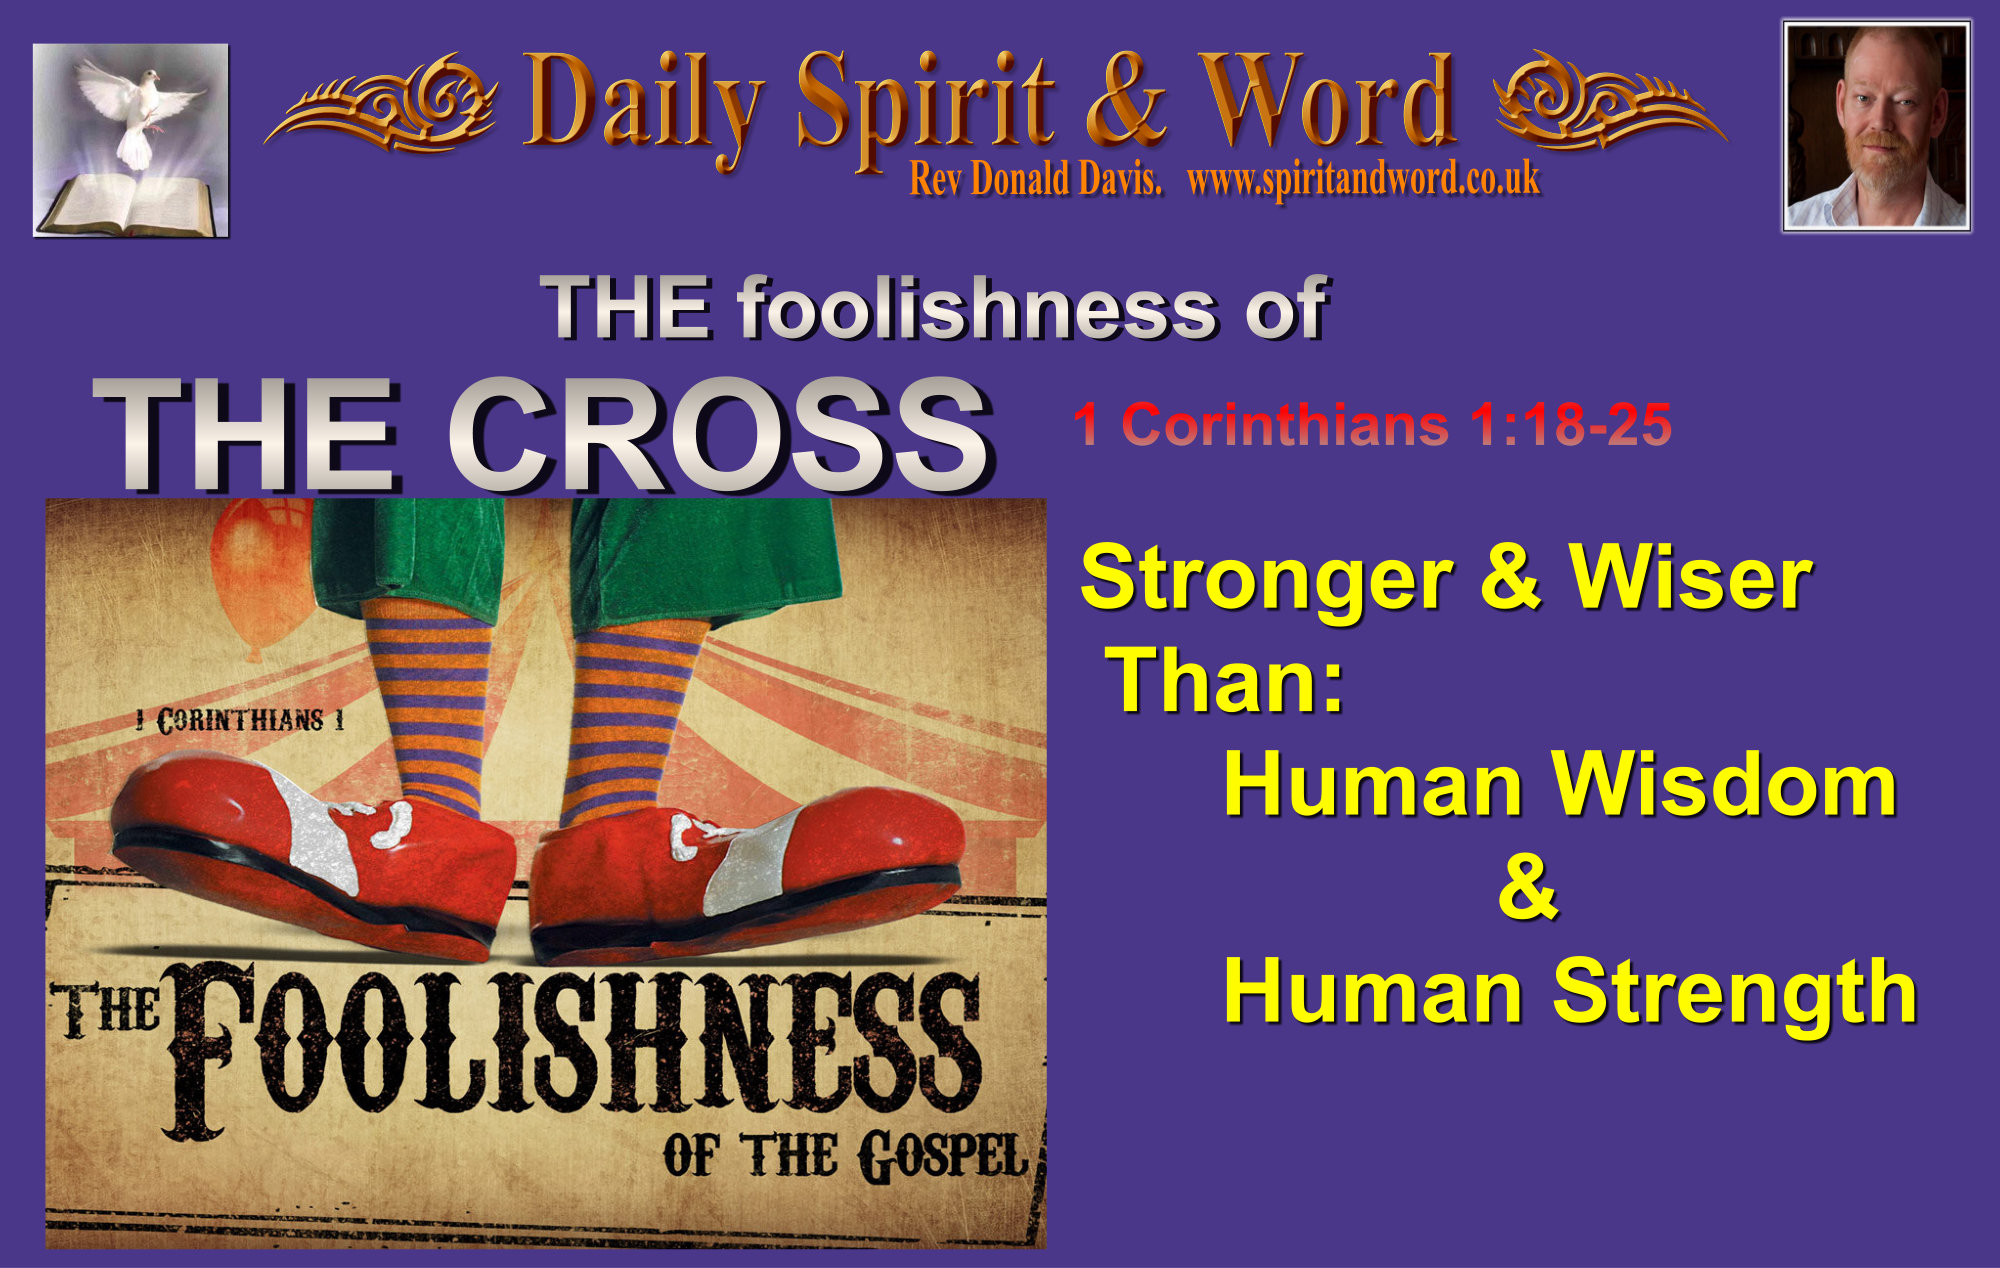 The foolishness of the Cross of Jesus